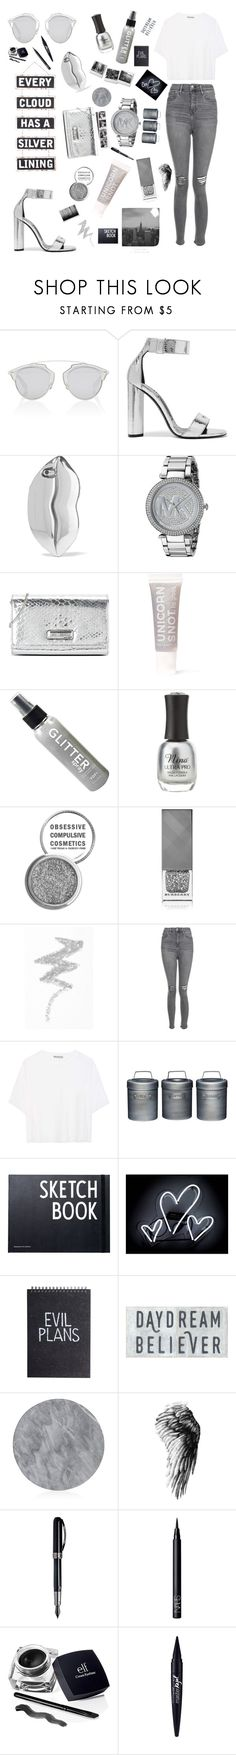 """""""Every cloud has a silver lining."""" by totalteenagenobody ❤ liked on Polyvore featuring Christian Dior, Tom Ford, Silver Lining, STELLA McCARTNEY, Michael Kors, Love Moschino, FCTRY, Charlotte Russe, Obsessive Compulsive Cosmetics and Burberry"""